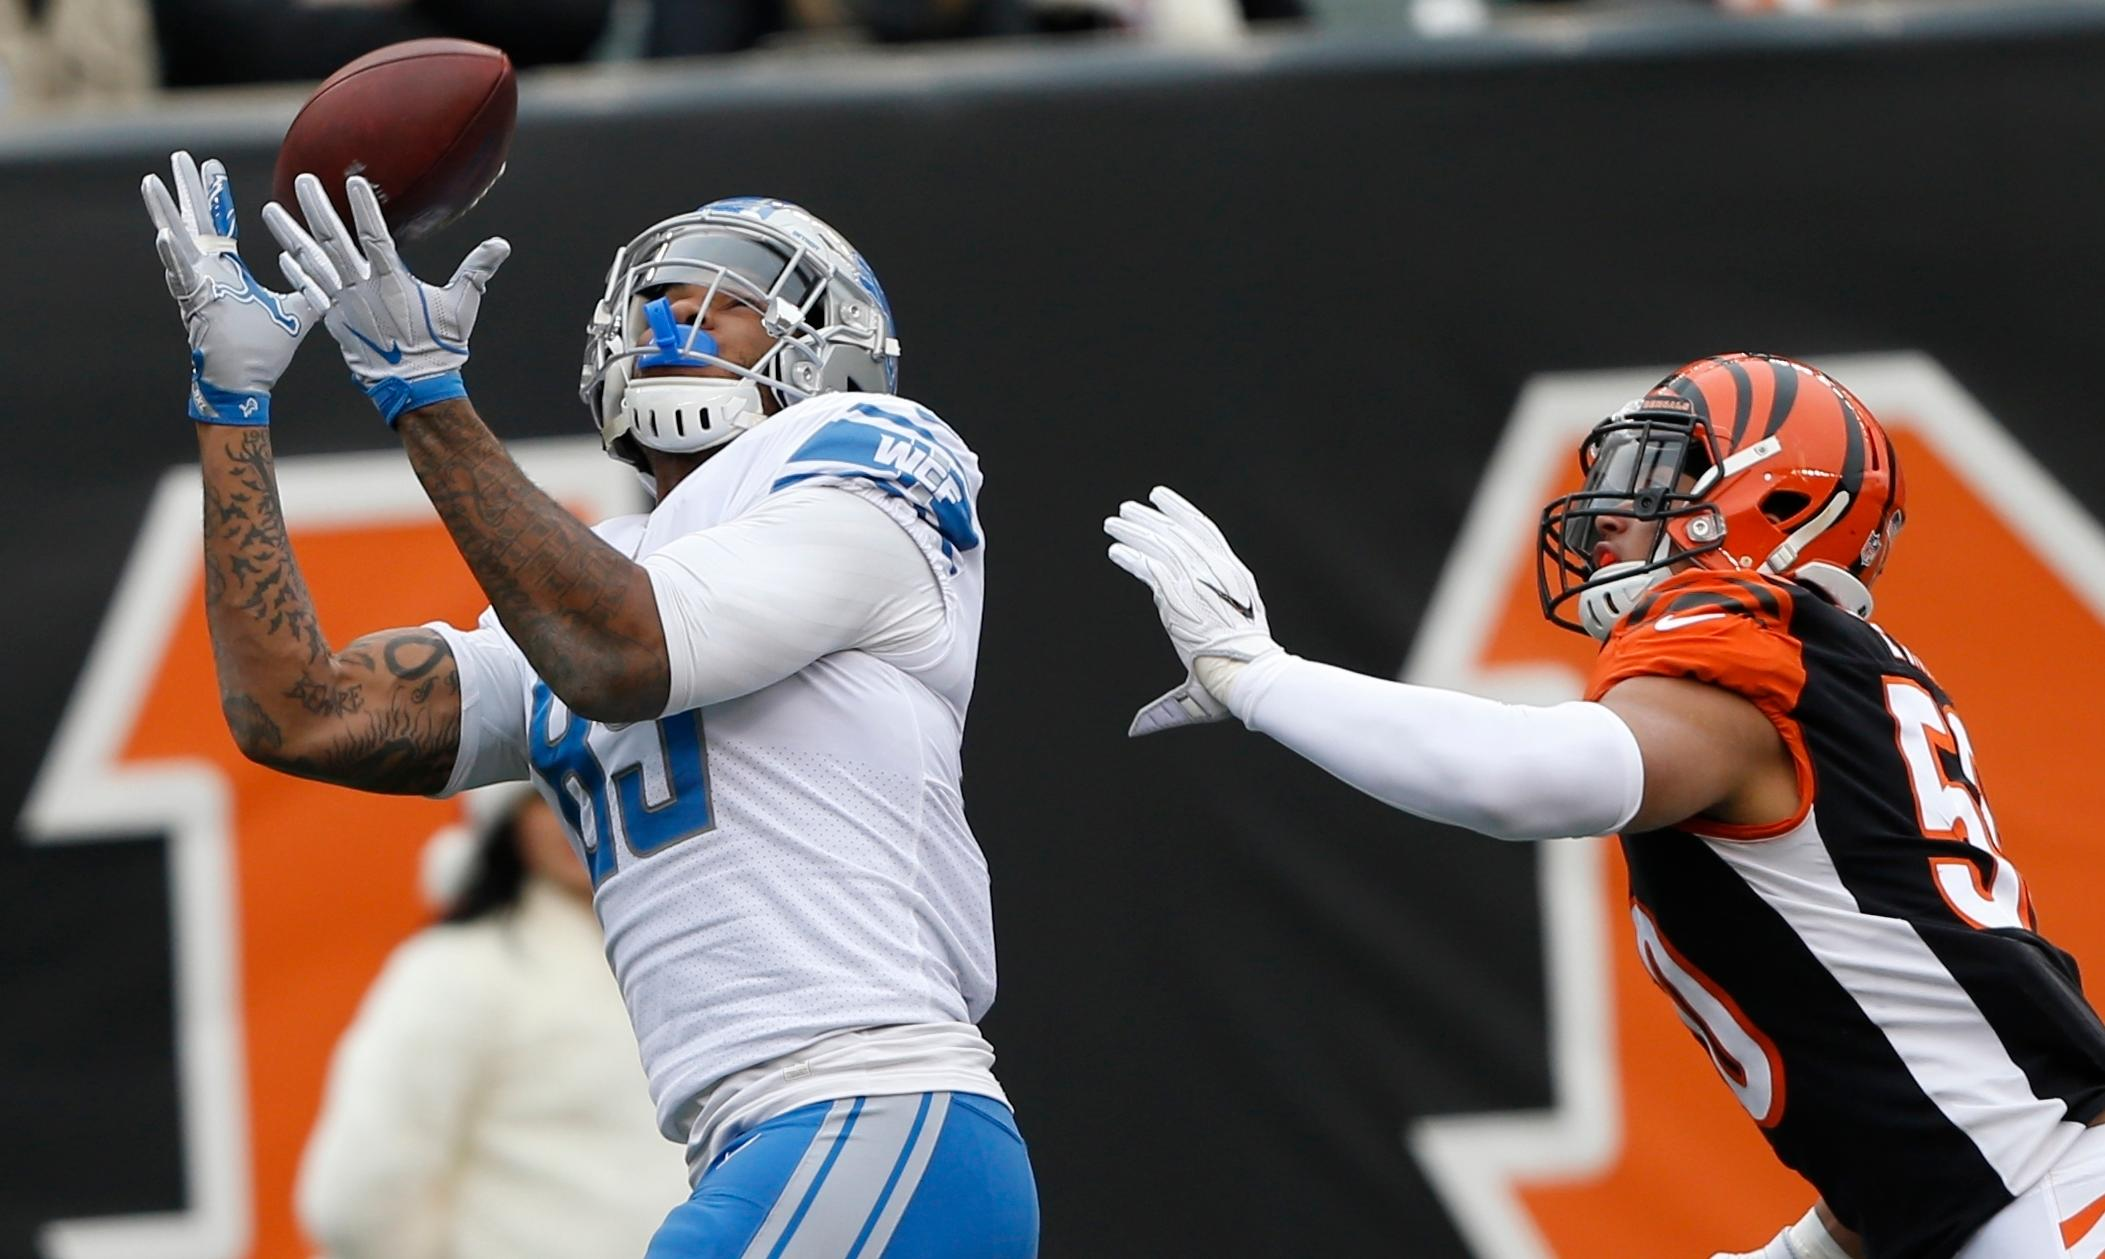 Detroit Lions tight end Eric Ebron (85) defended by Cincinnati Bengals linebacker Jordan Evans catches a 33-yard pass for a touchdown during the first half of an NFL football game, Sunday, Dec. 24, 2017, in Cincinnati. (AP Photo/Frank Victores)